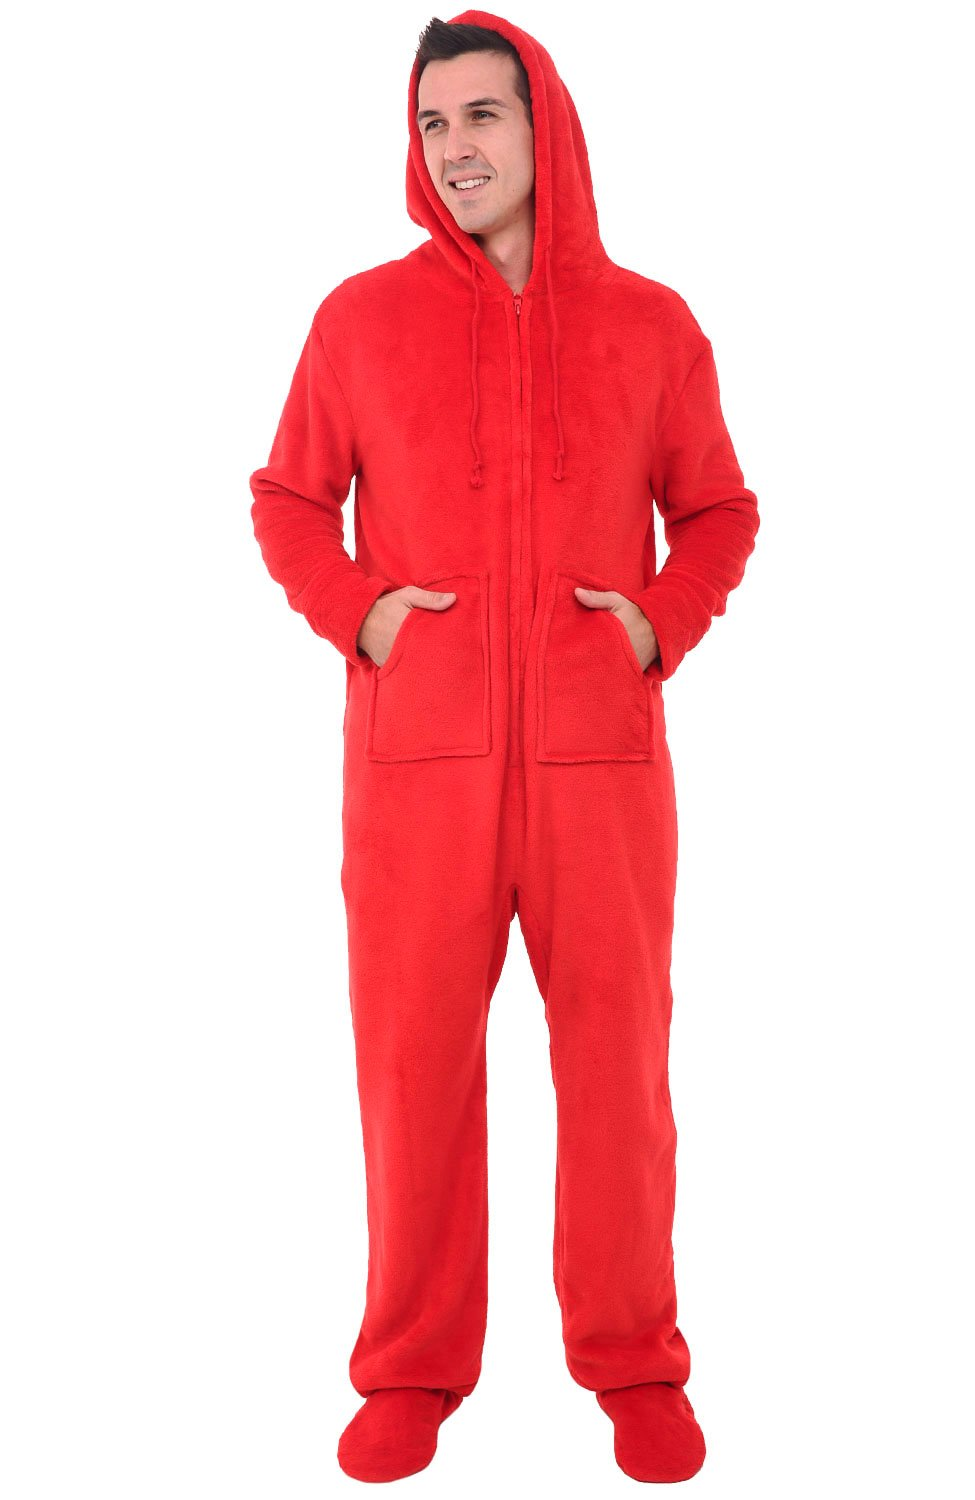 Alexander Del Rossa Mens Fleece Onesie, Hooded Footed Jumpsuit Pajamas, Large Red (A0320REDLG)